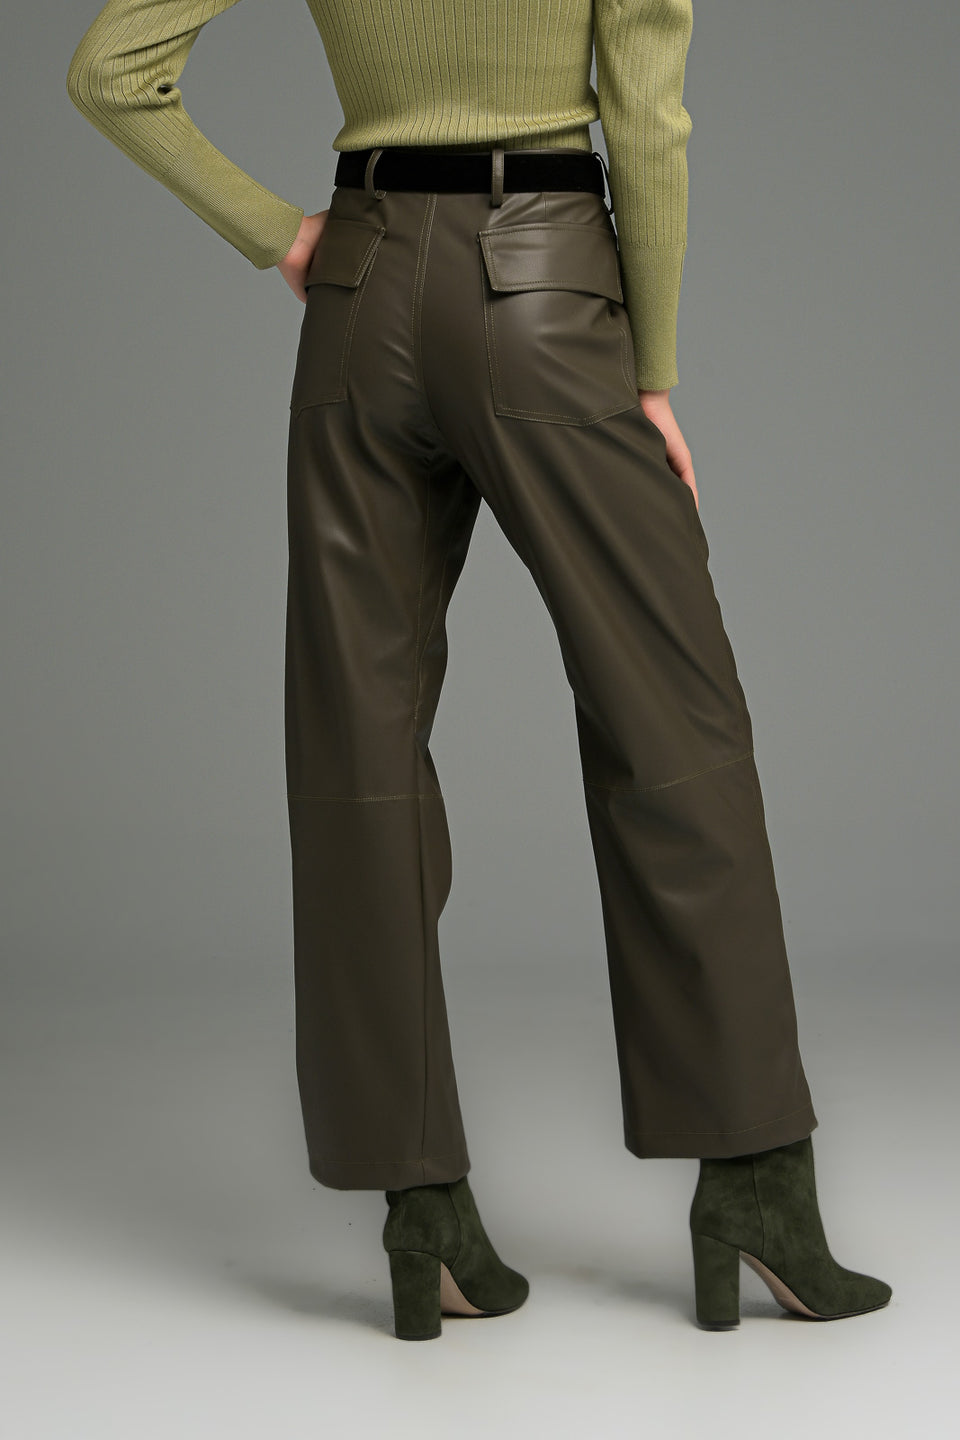 HIGH WAIST FAUX LEATHER TROUSERS WITH UTILITY POCKETS KHAKI